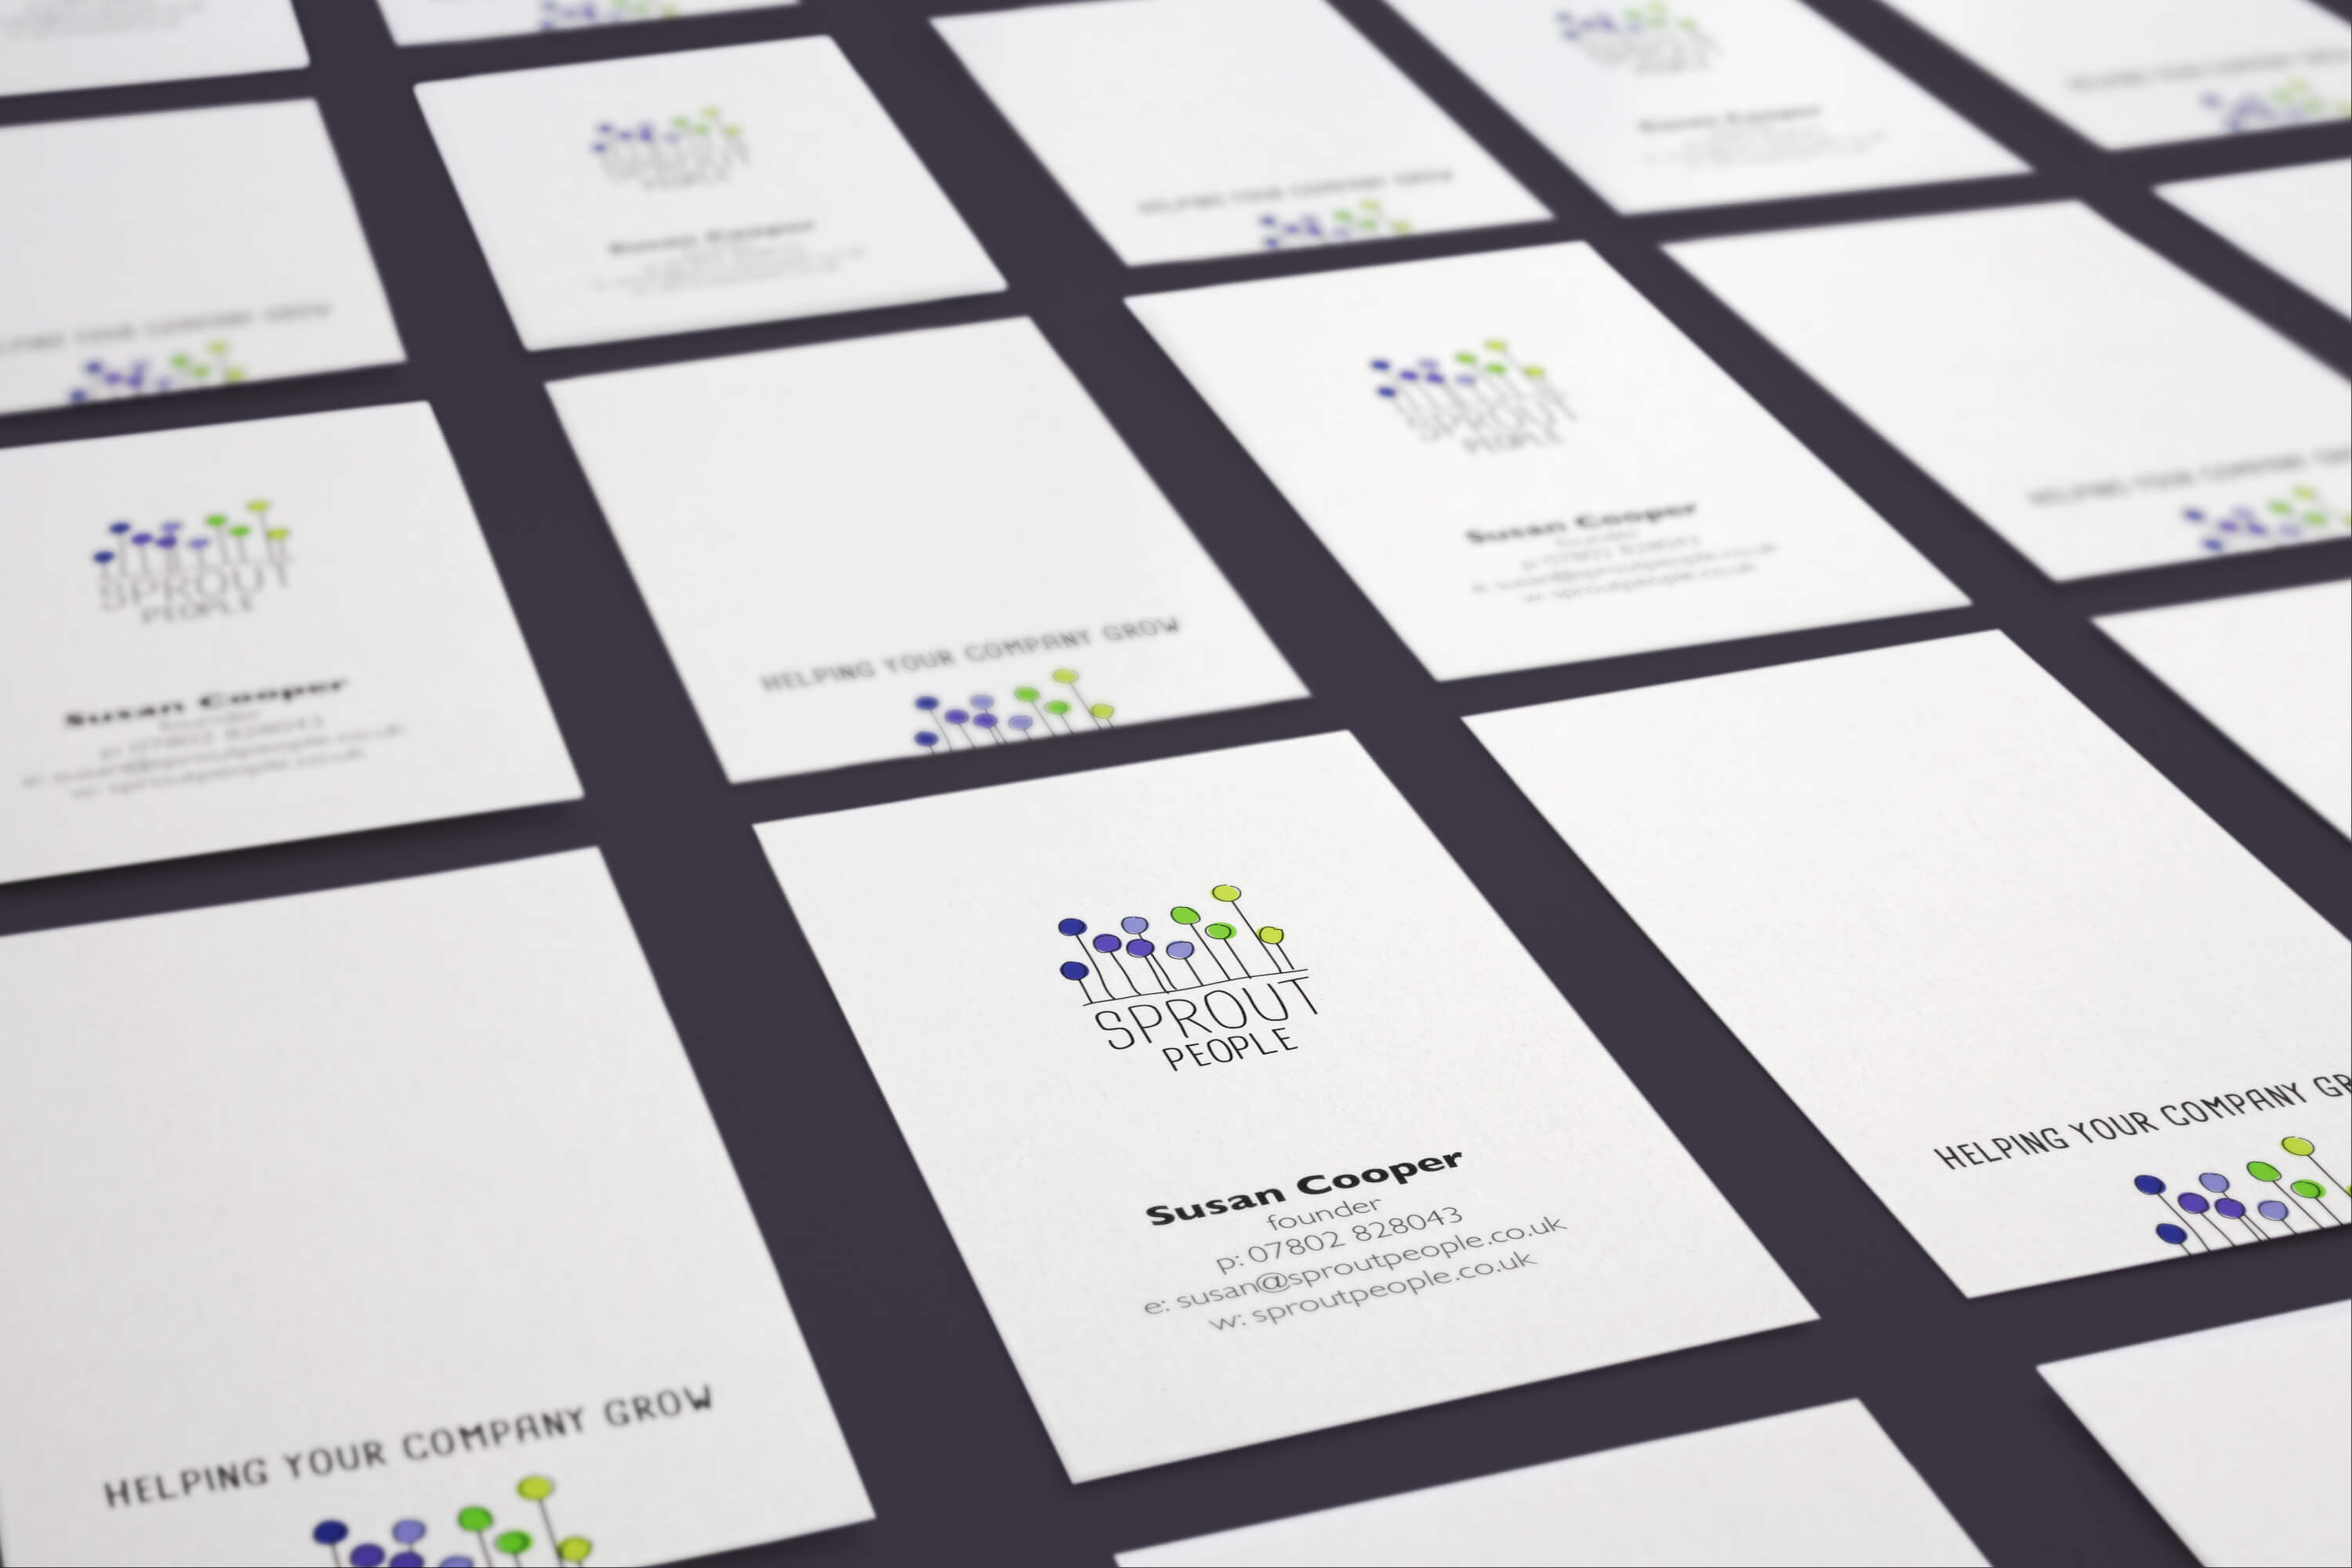 Multiple cards displaying the Sprout People brand identity on the front and back of business cards